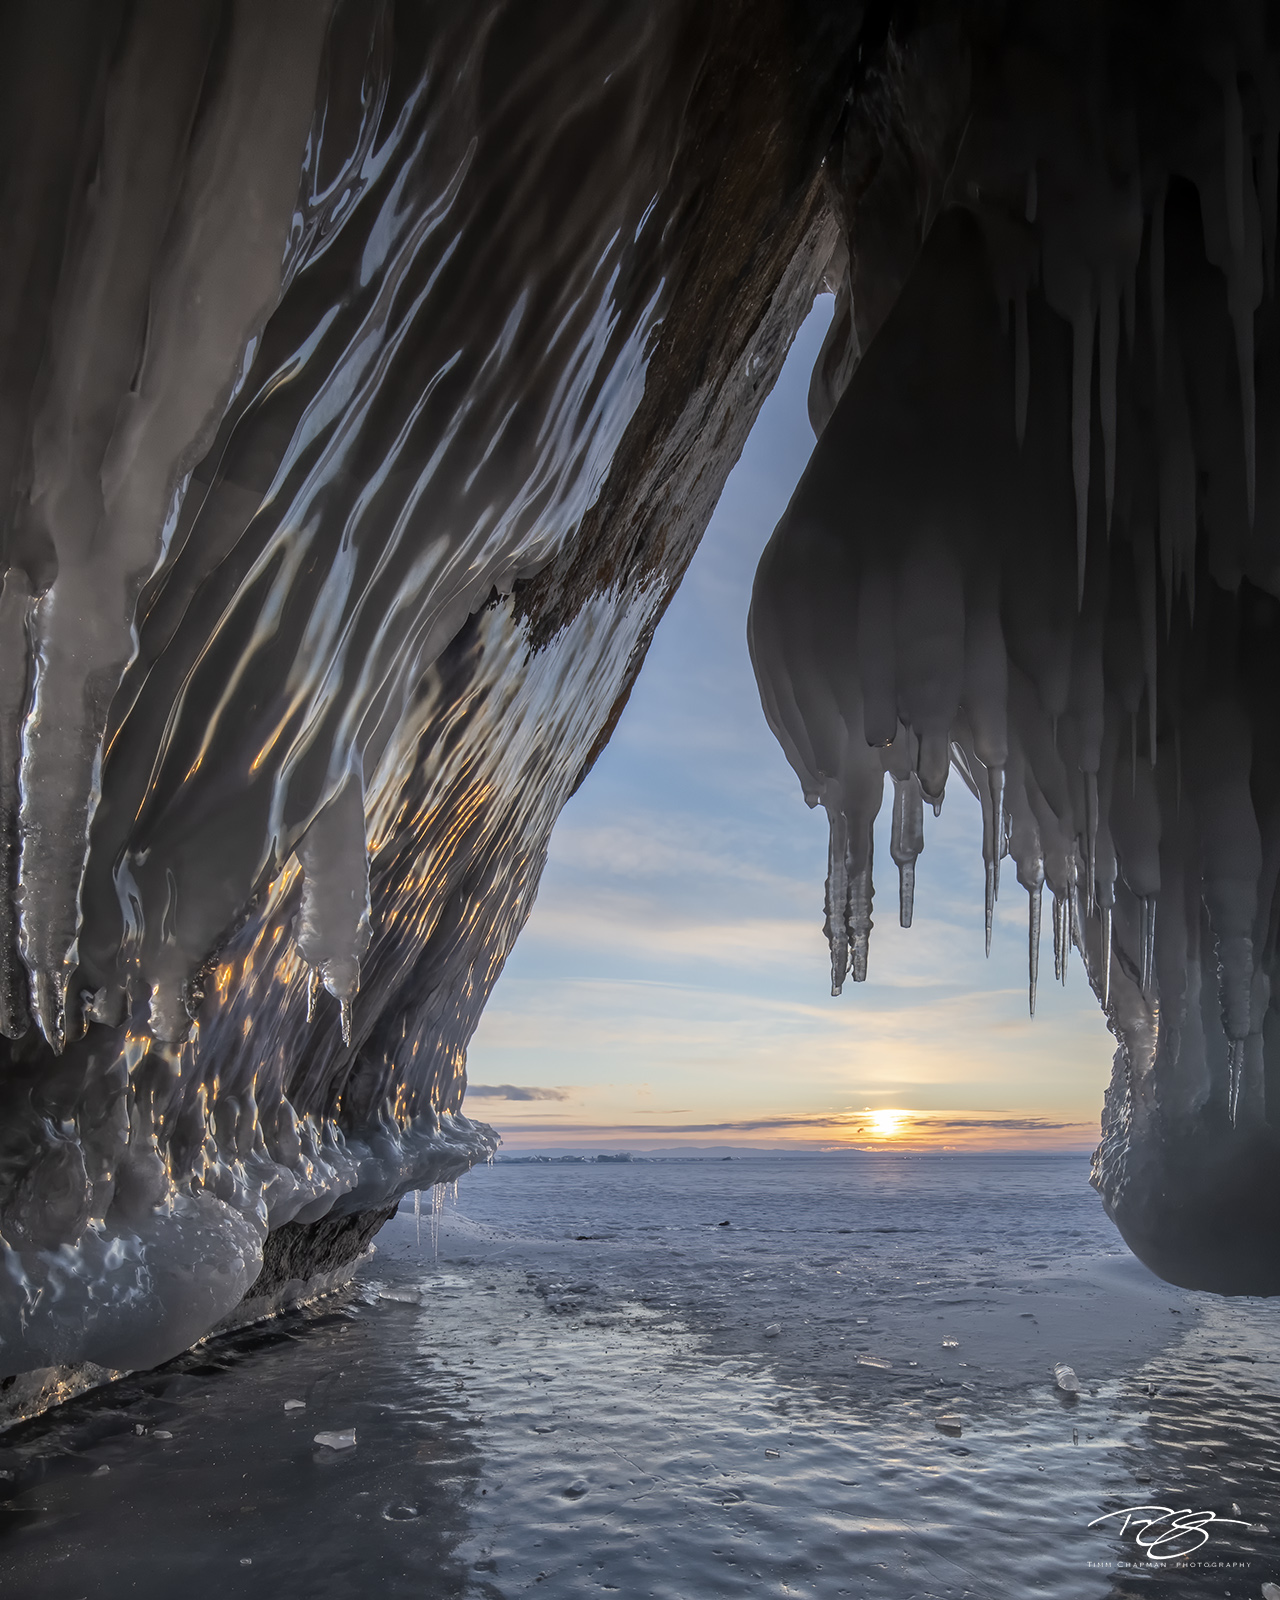 russia, lake baikal, siberia, ice, winter, Pribaikalsky National Park, Прибайкальский национальный парк, Pribaykalski National Park, ice cave, cape izhimey, izhimey cape, olkhon island, sunrise, photo